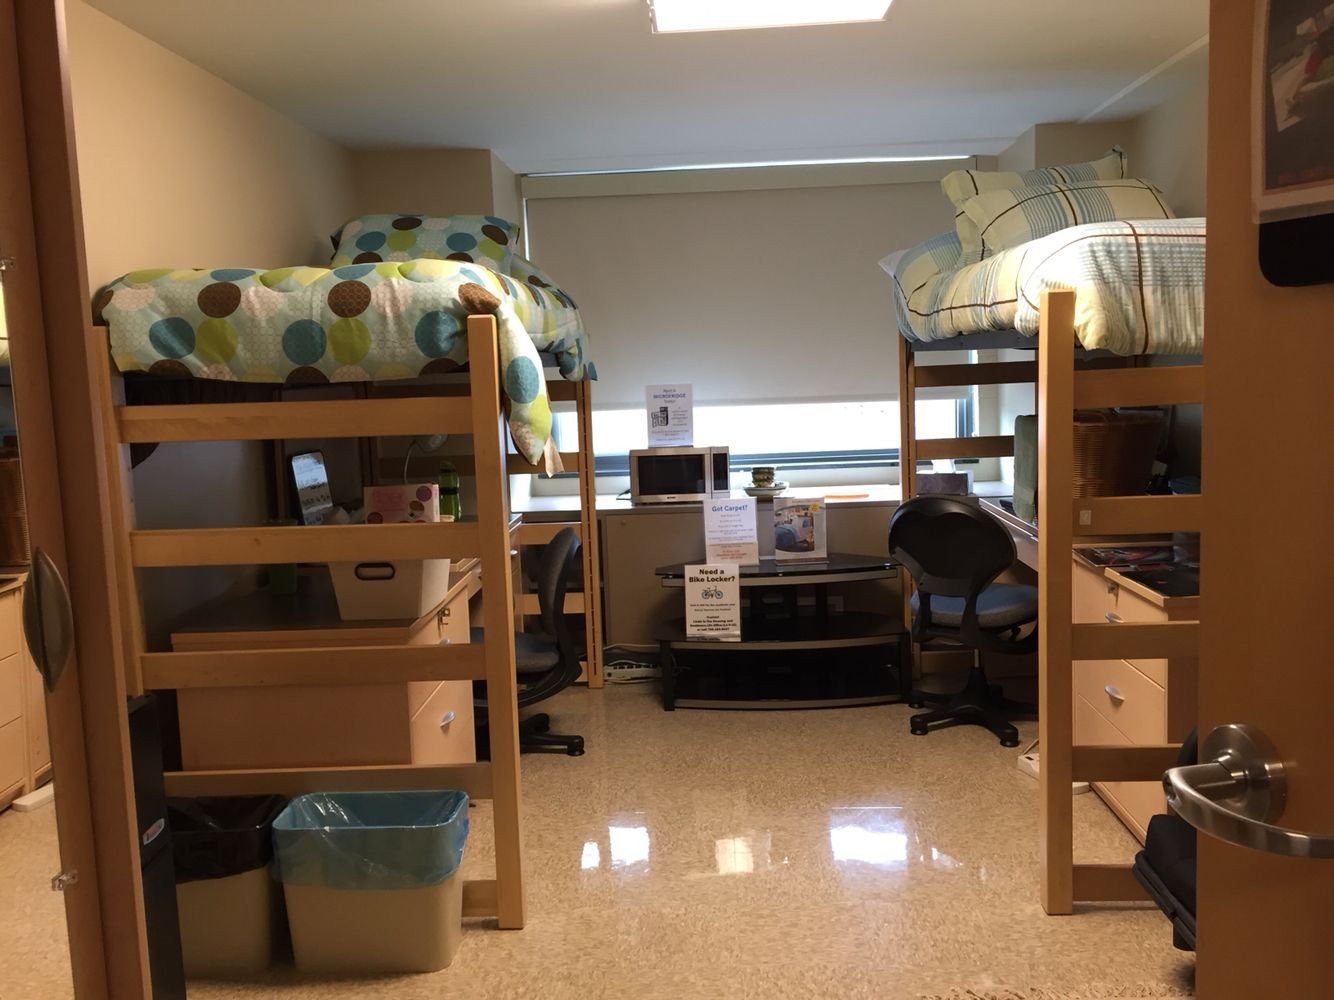 Ball State Dorm With Images College Room Dorm Room Dorm